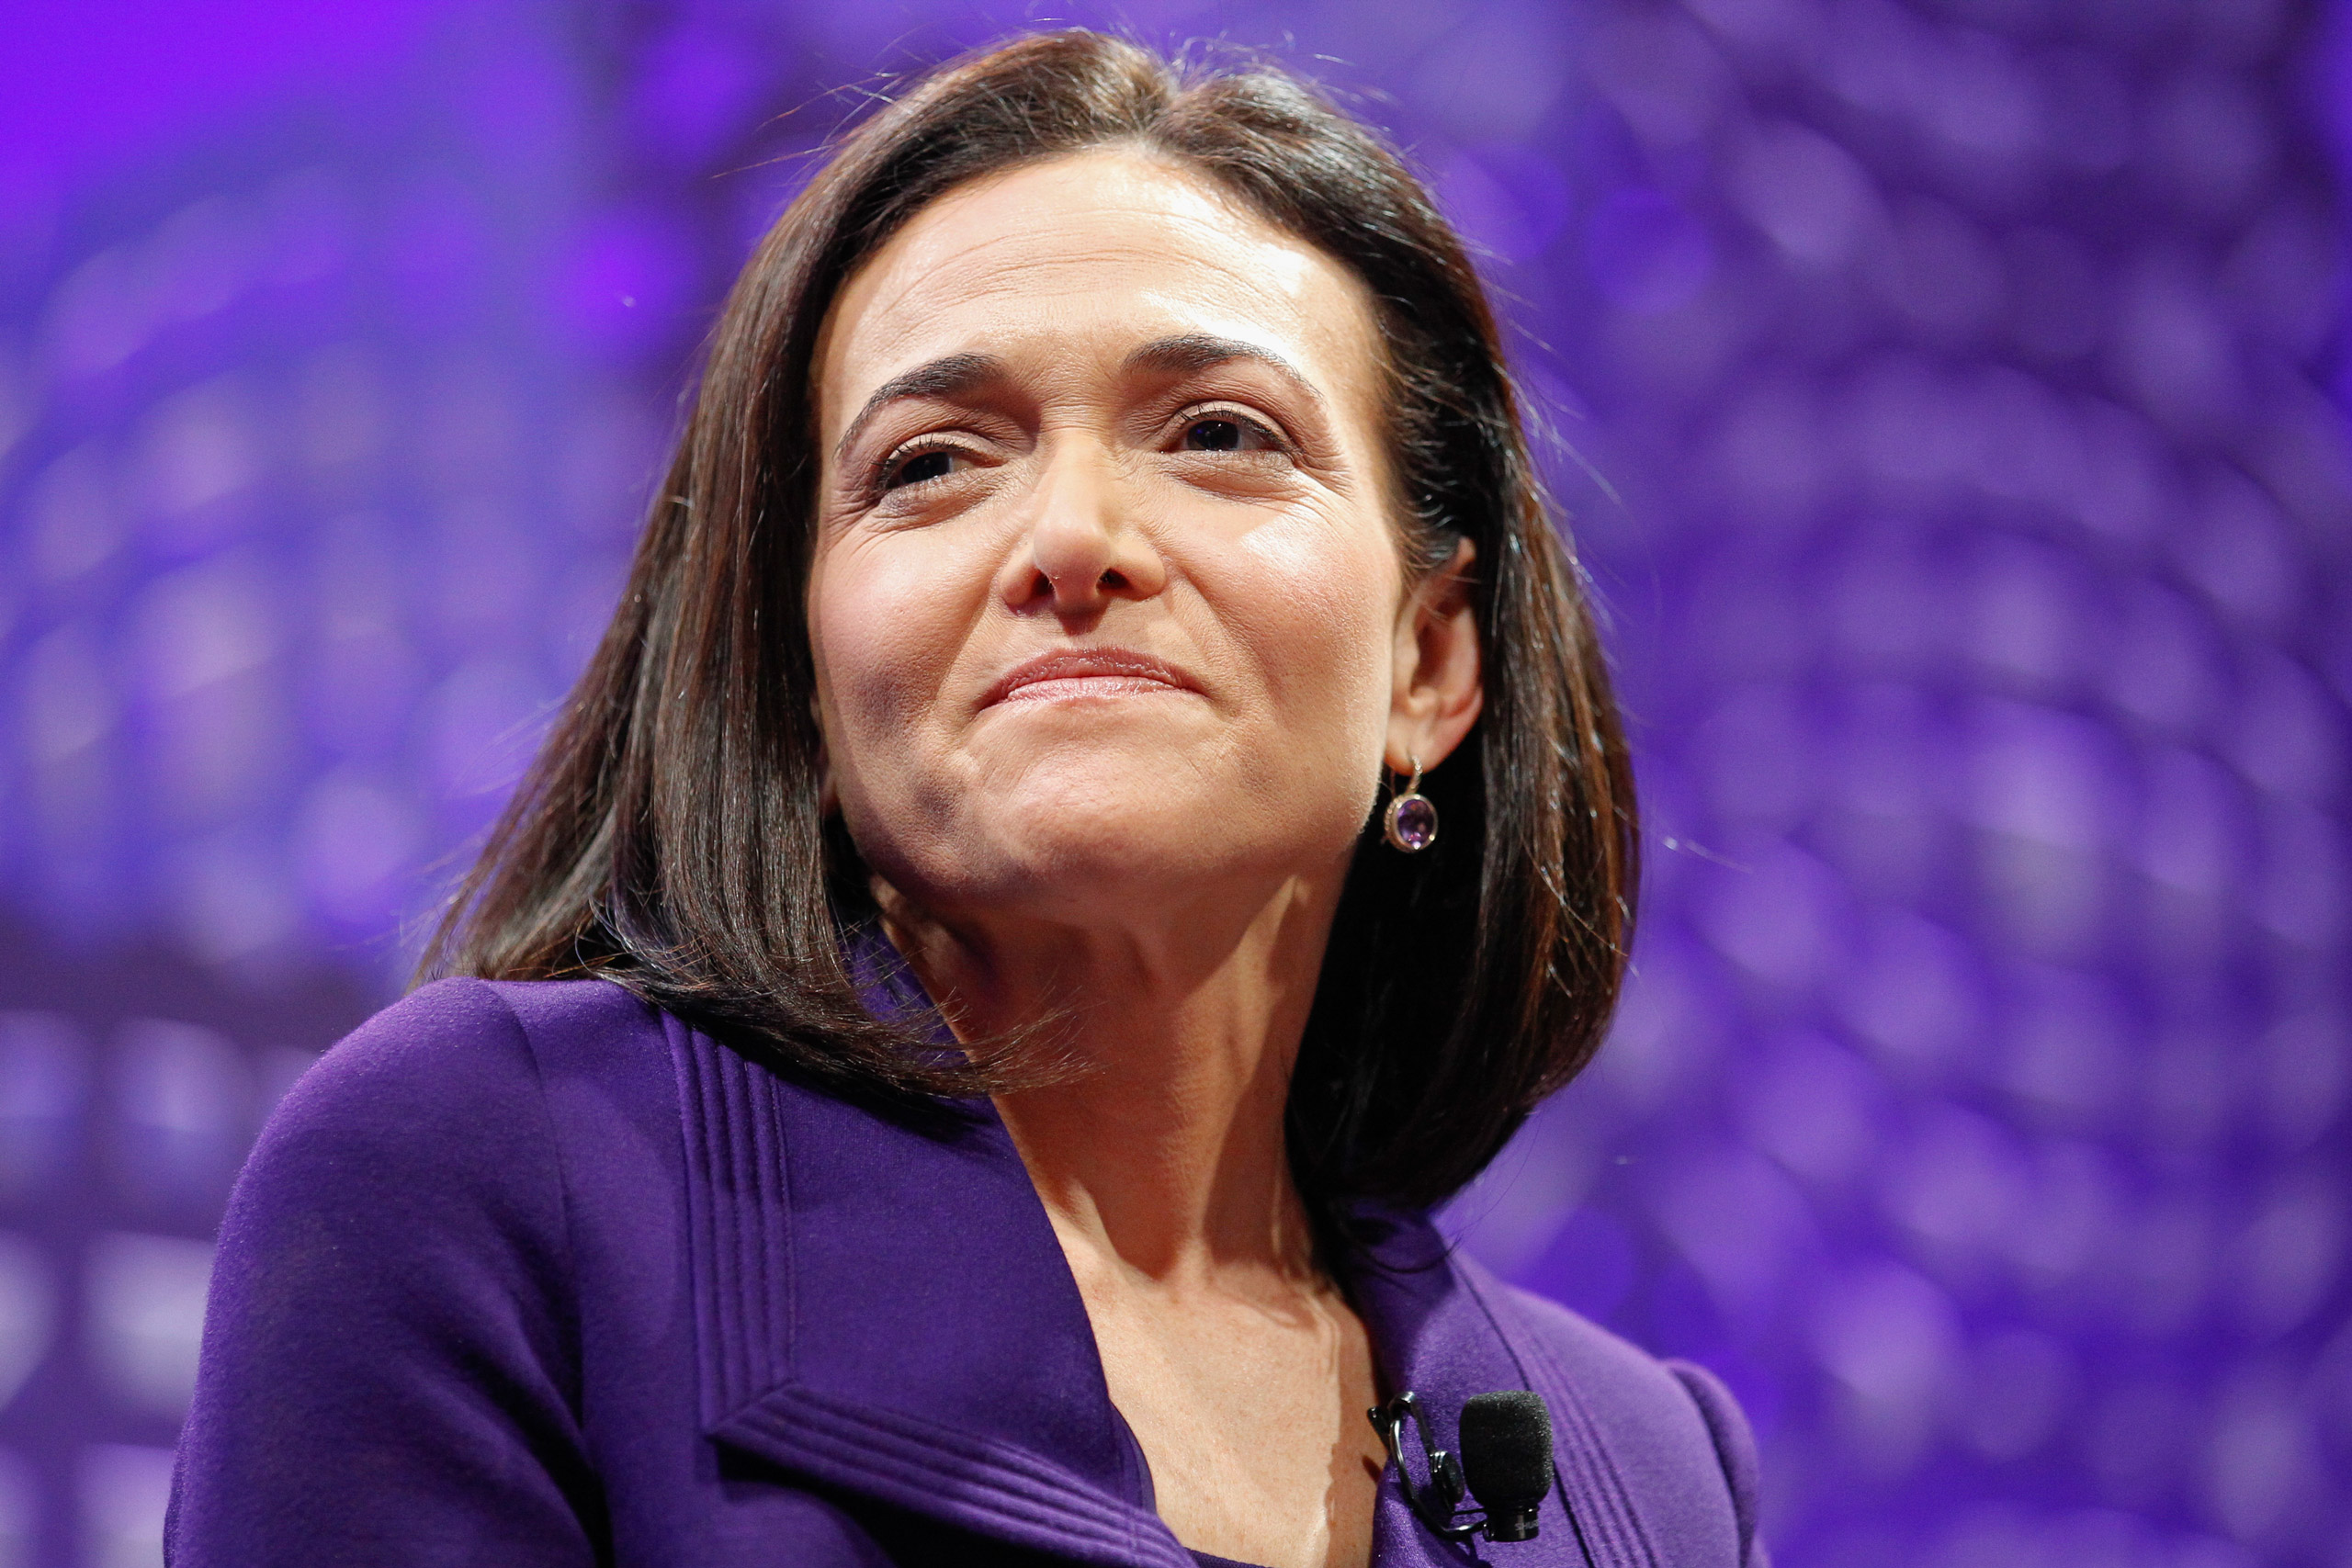 Sheryl Sandberg on a panel at the Fortune Global Forum - Day2 at the Fairmont Hotel in San Francisco on Nov. 3, 2015.